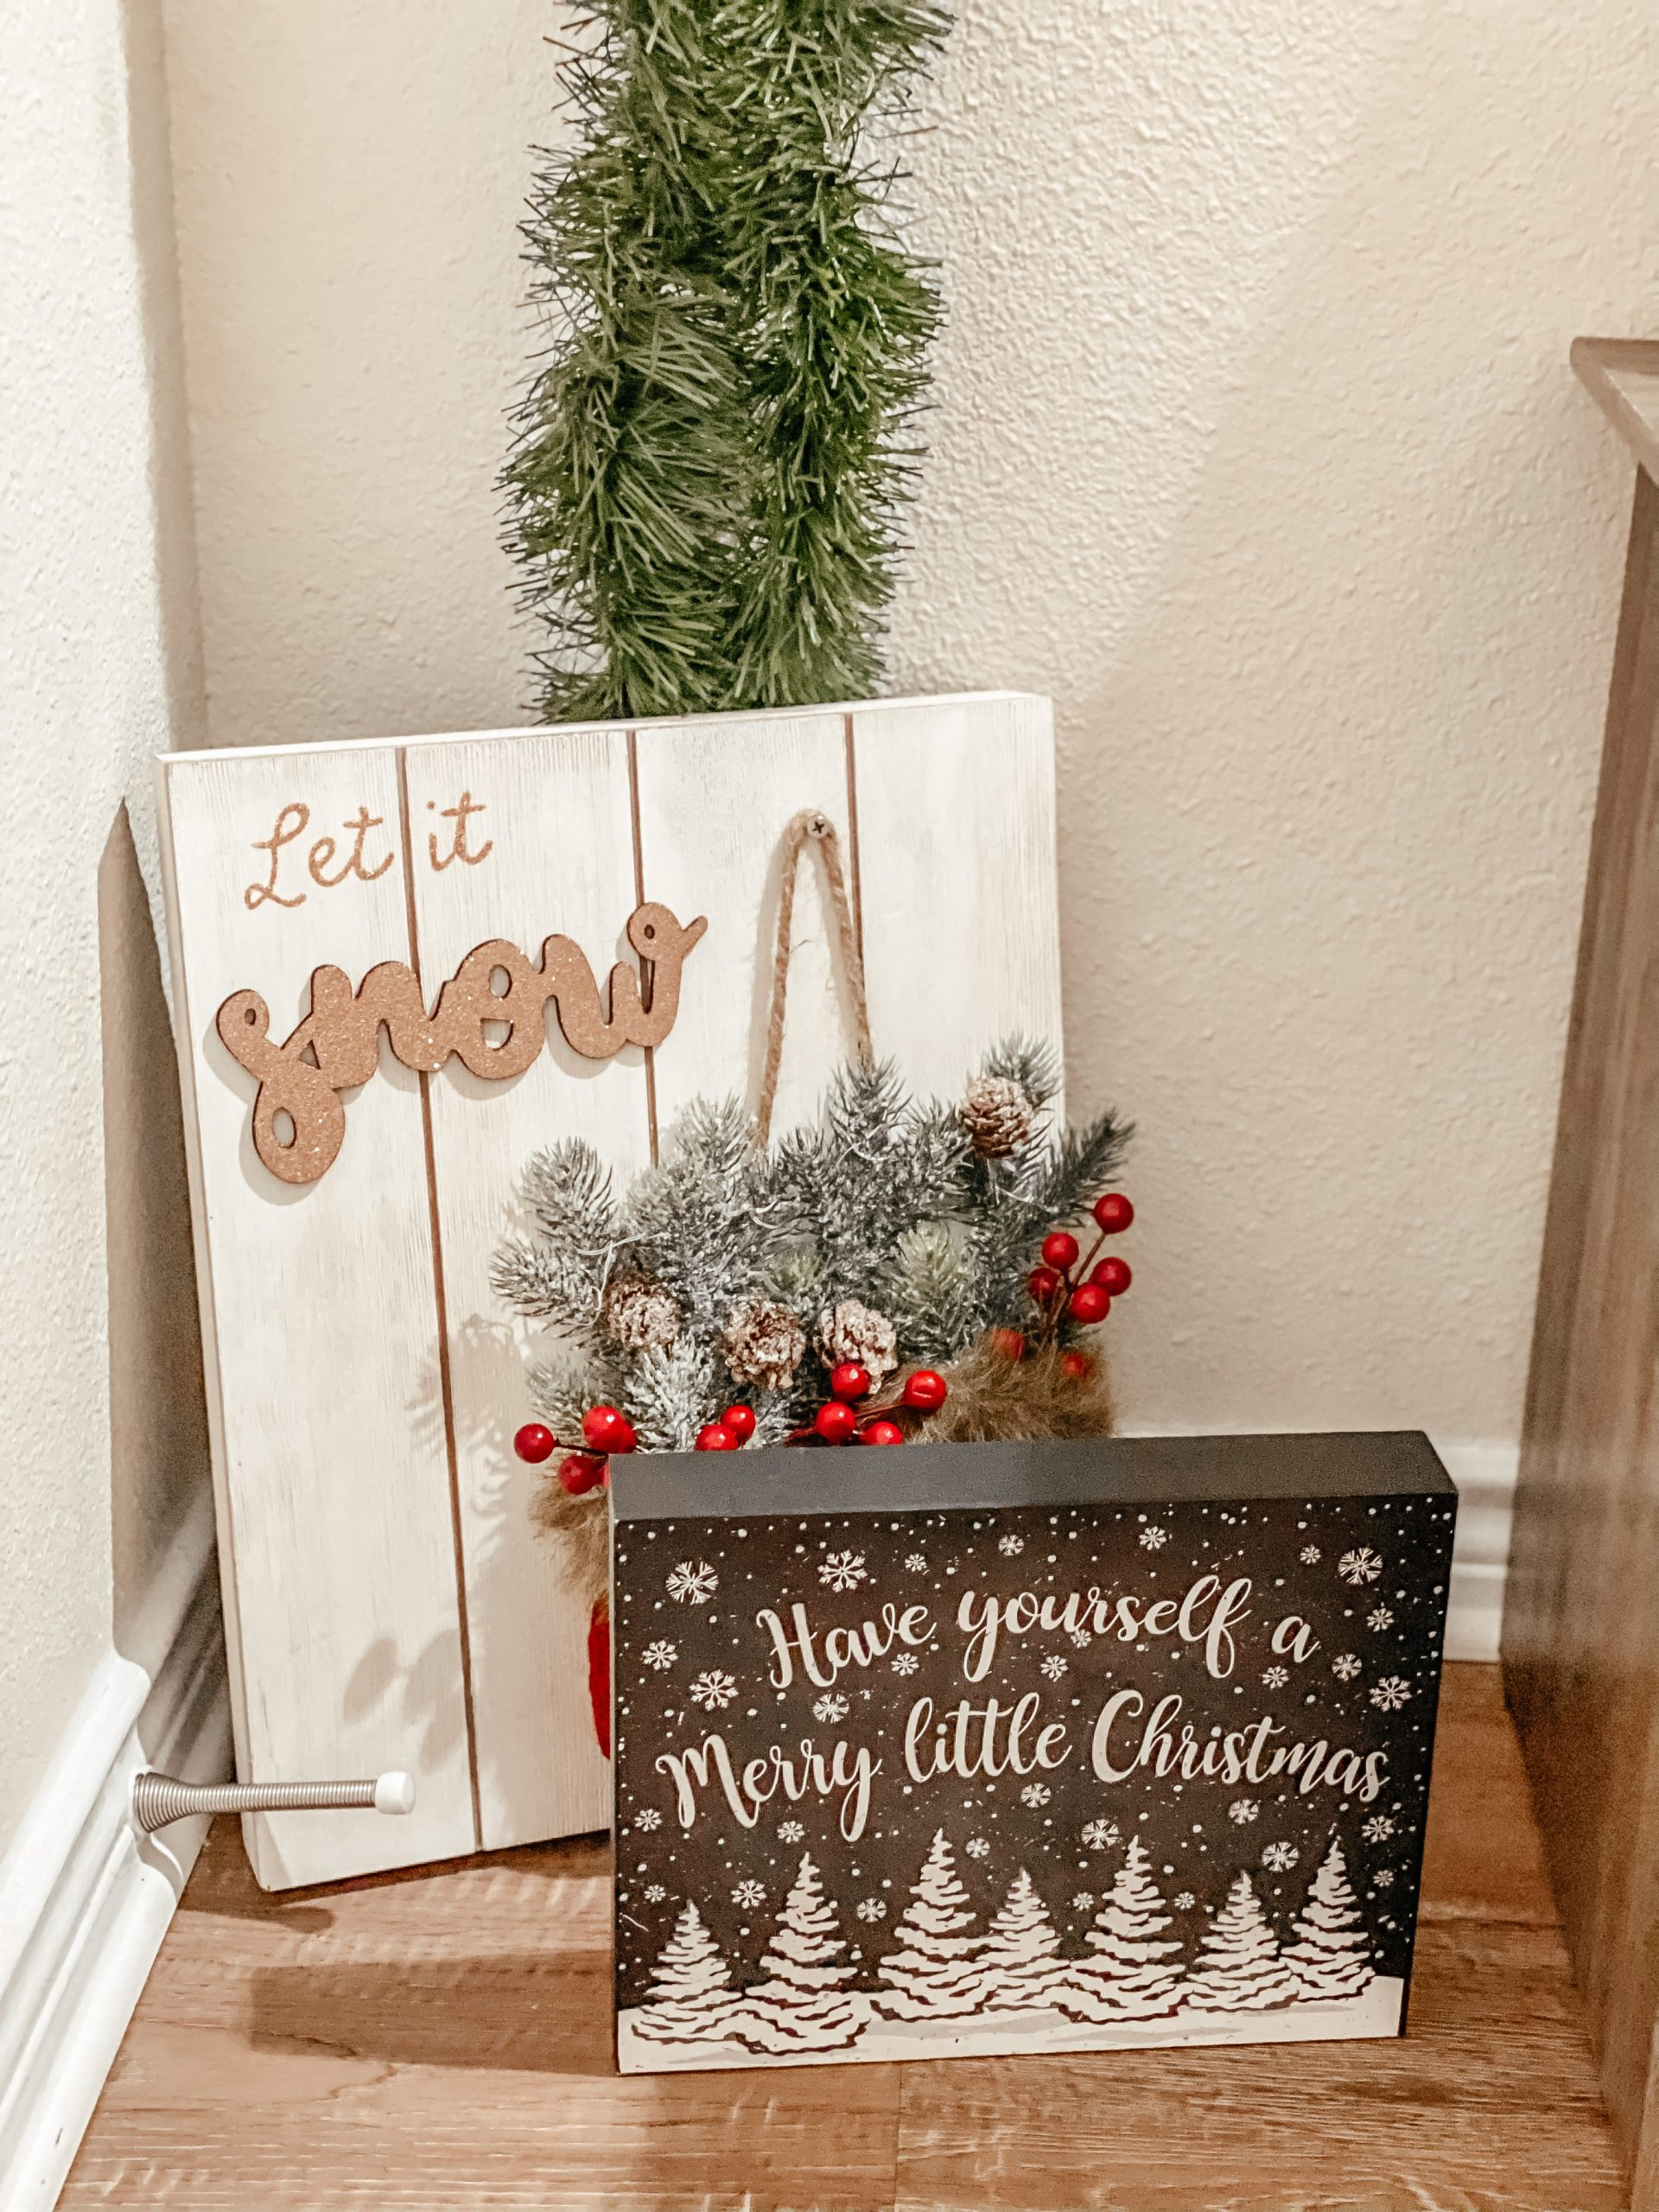 Red and White Christmas Signs and Decor